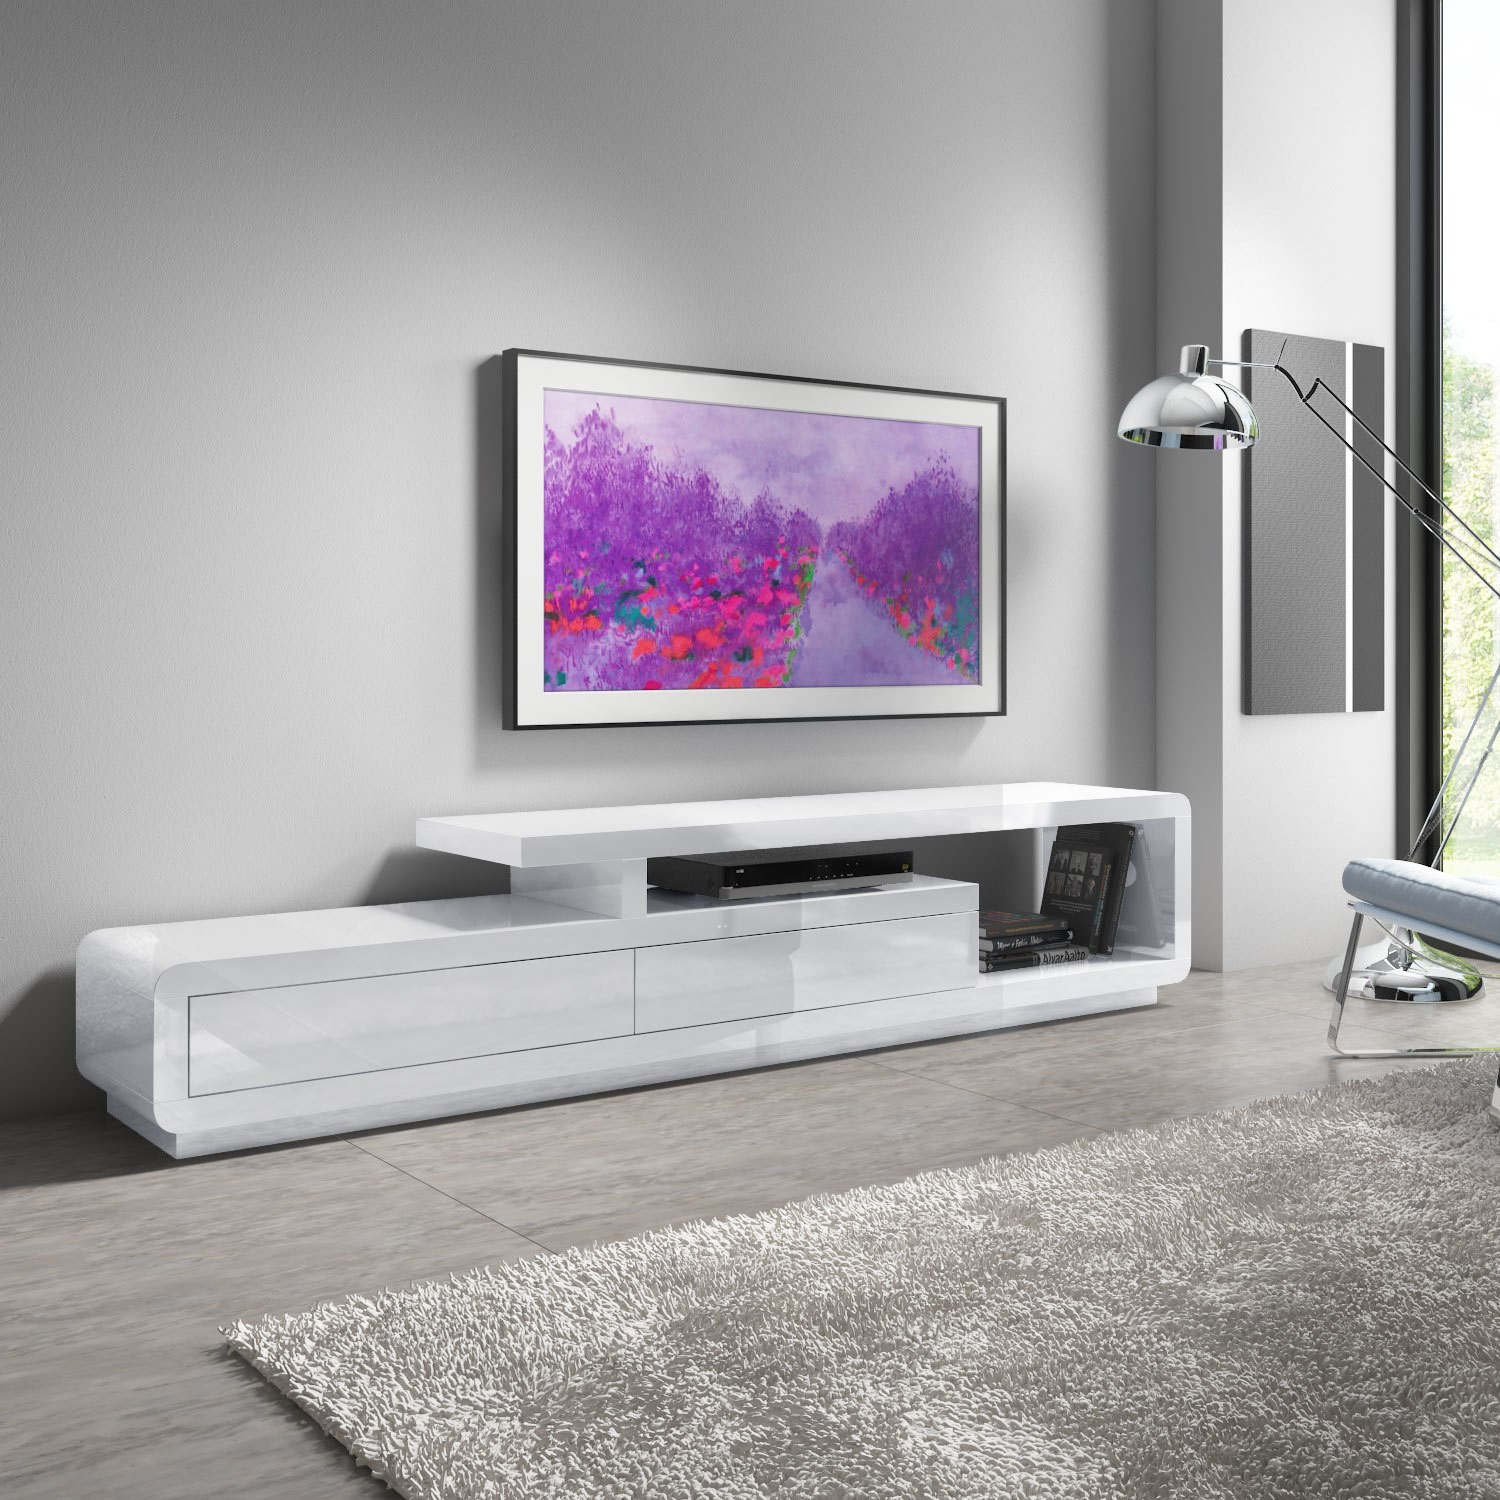 sale retailer 092c7 a3b96 Evoque XL White High Gloss TV Unit with Touch Open Drawers - TV's up to 47